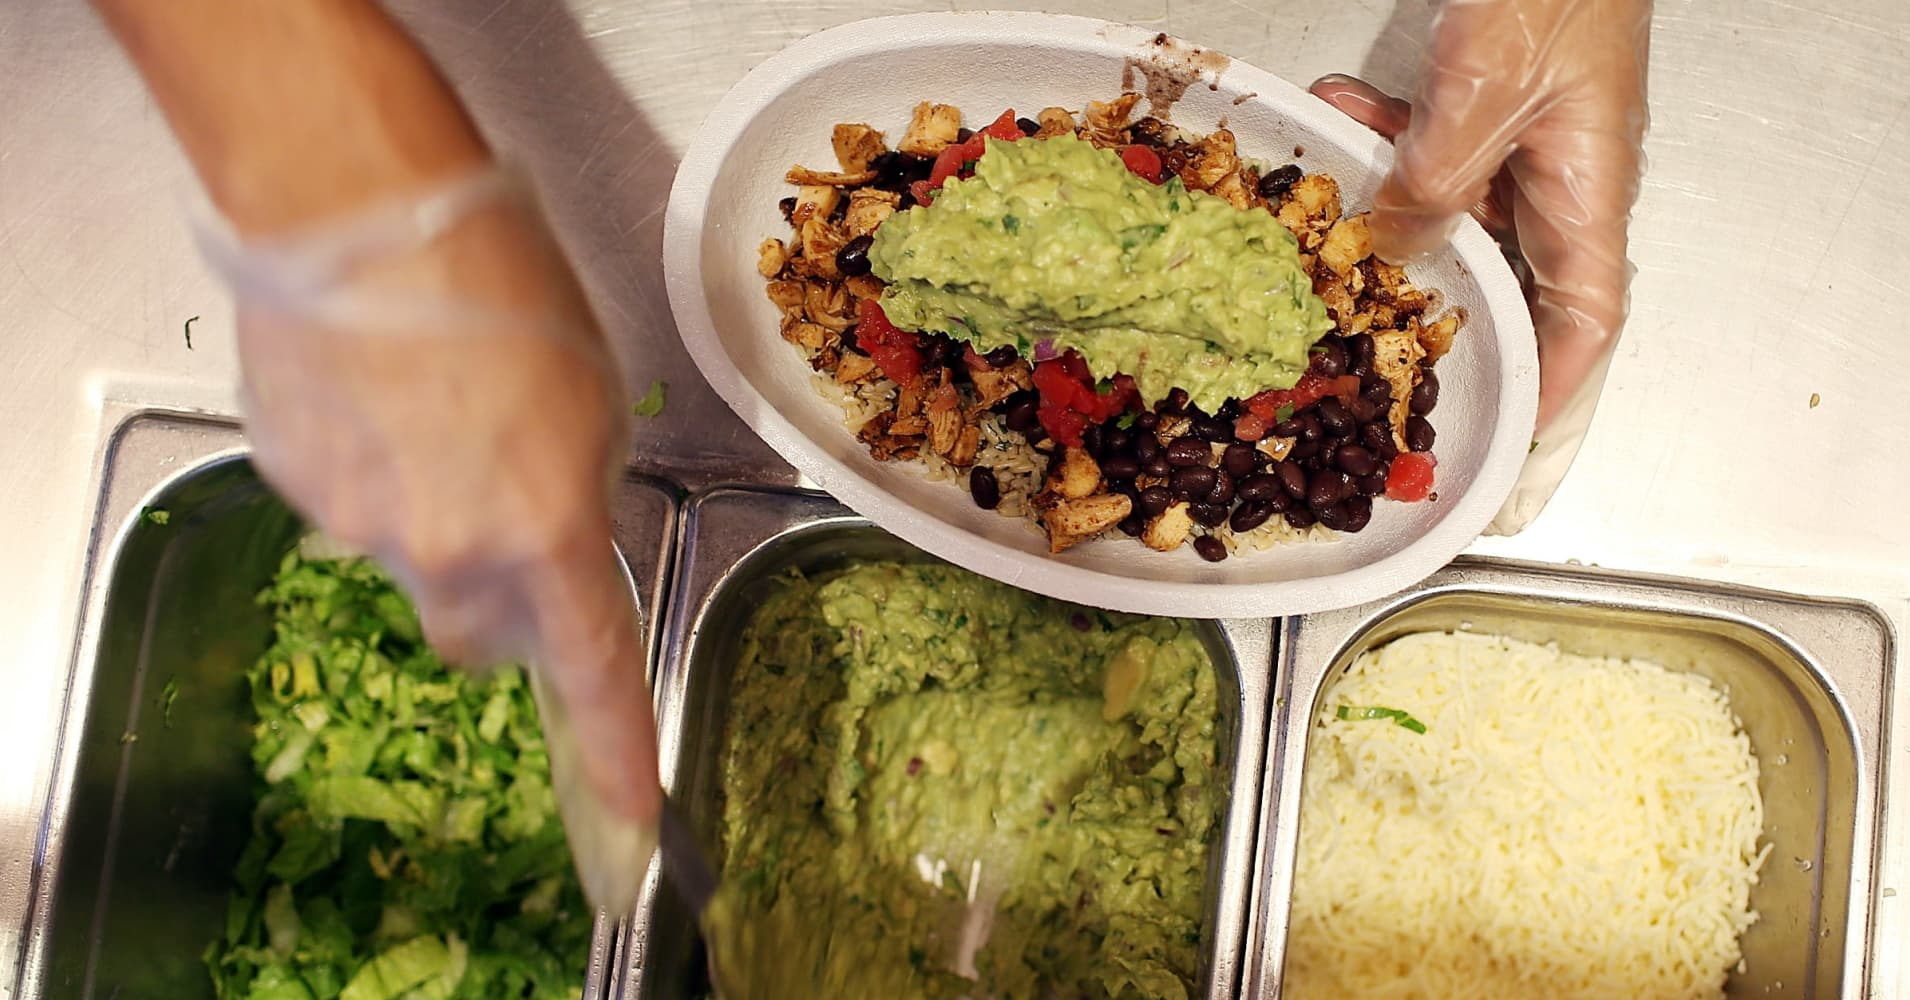 Chipotle Wants You to Try its New Diet Bowls, so You'll Sign up for its App